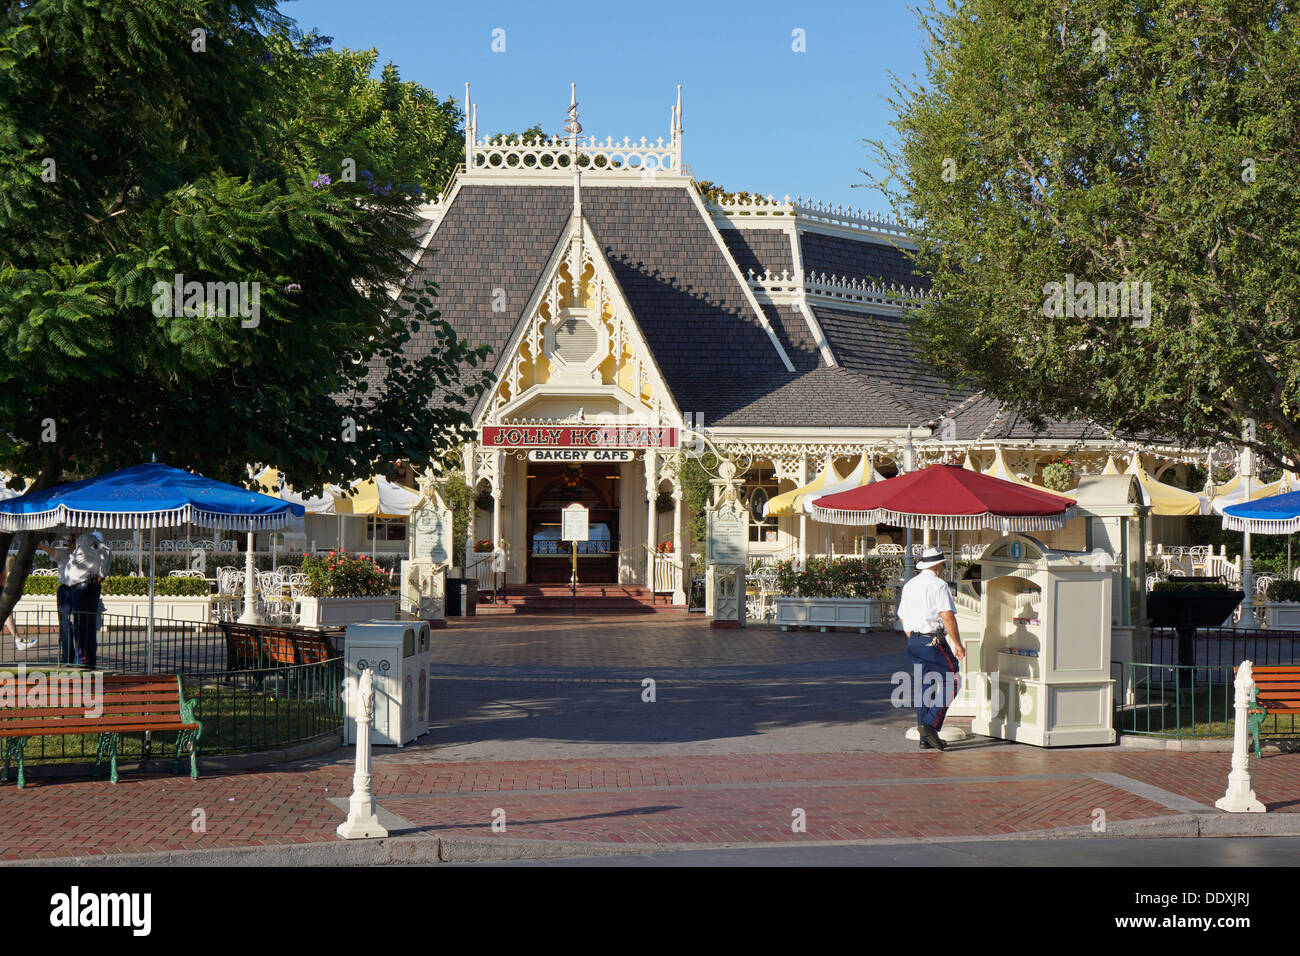 Disneyland, Jolly Holiday, Bakery Cafe on Main Street, Anaheim, California Imagen De Stock